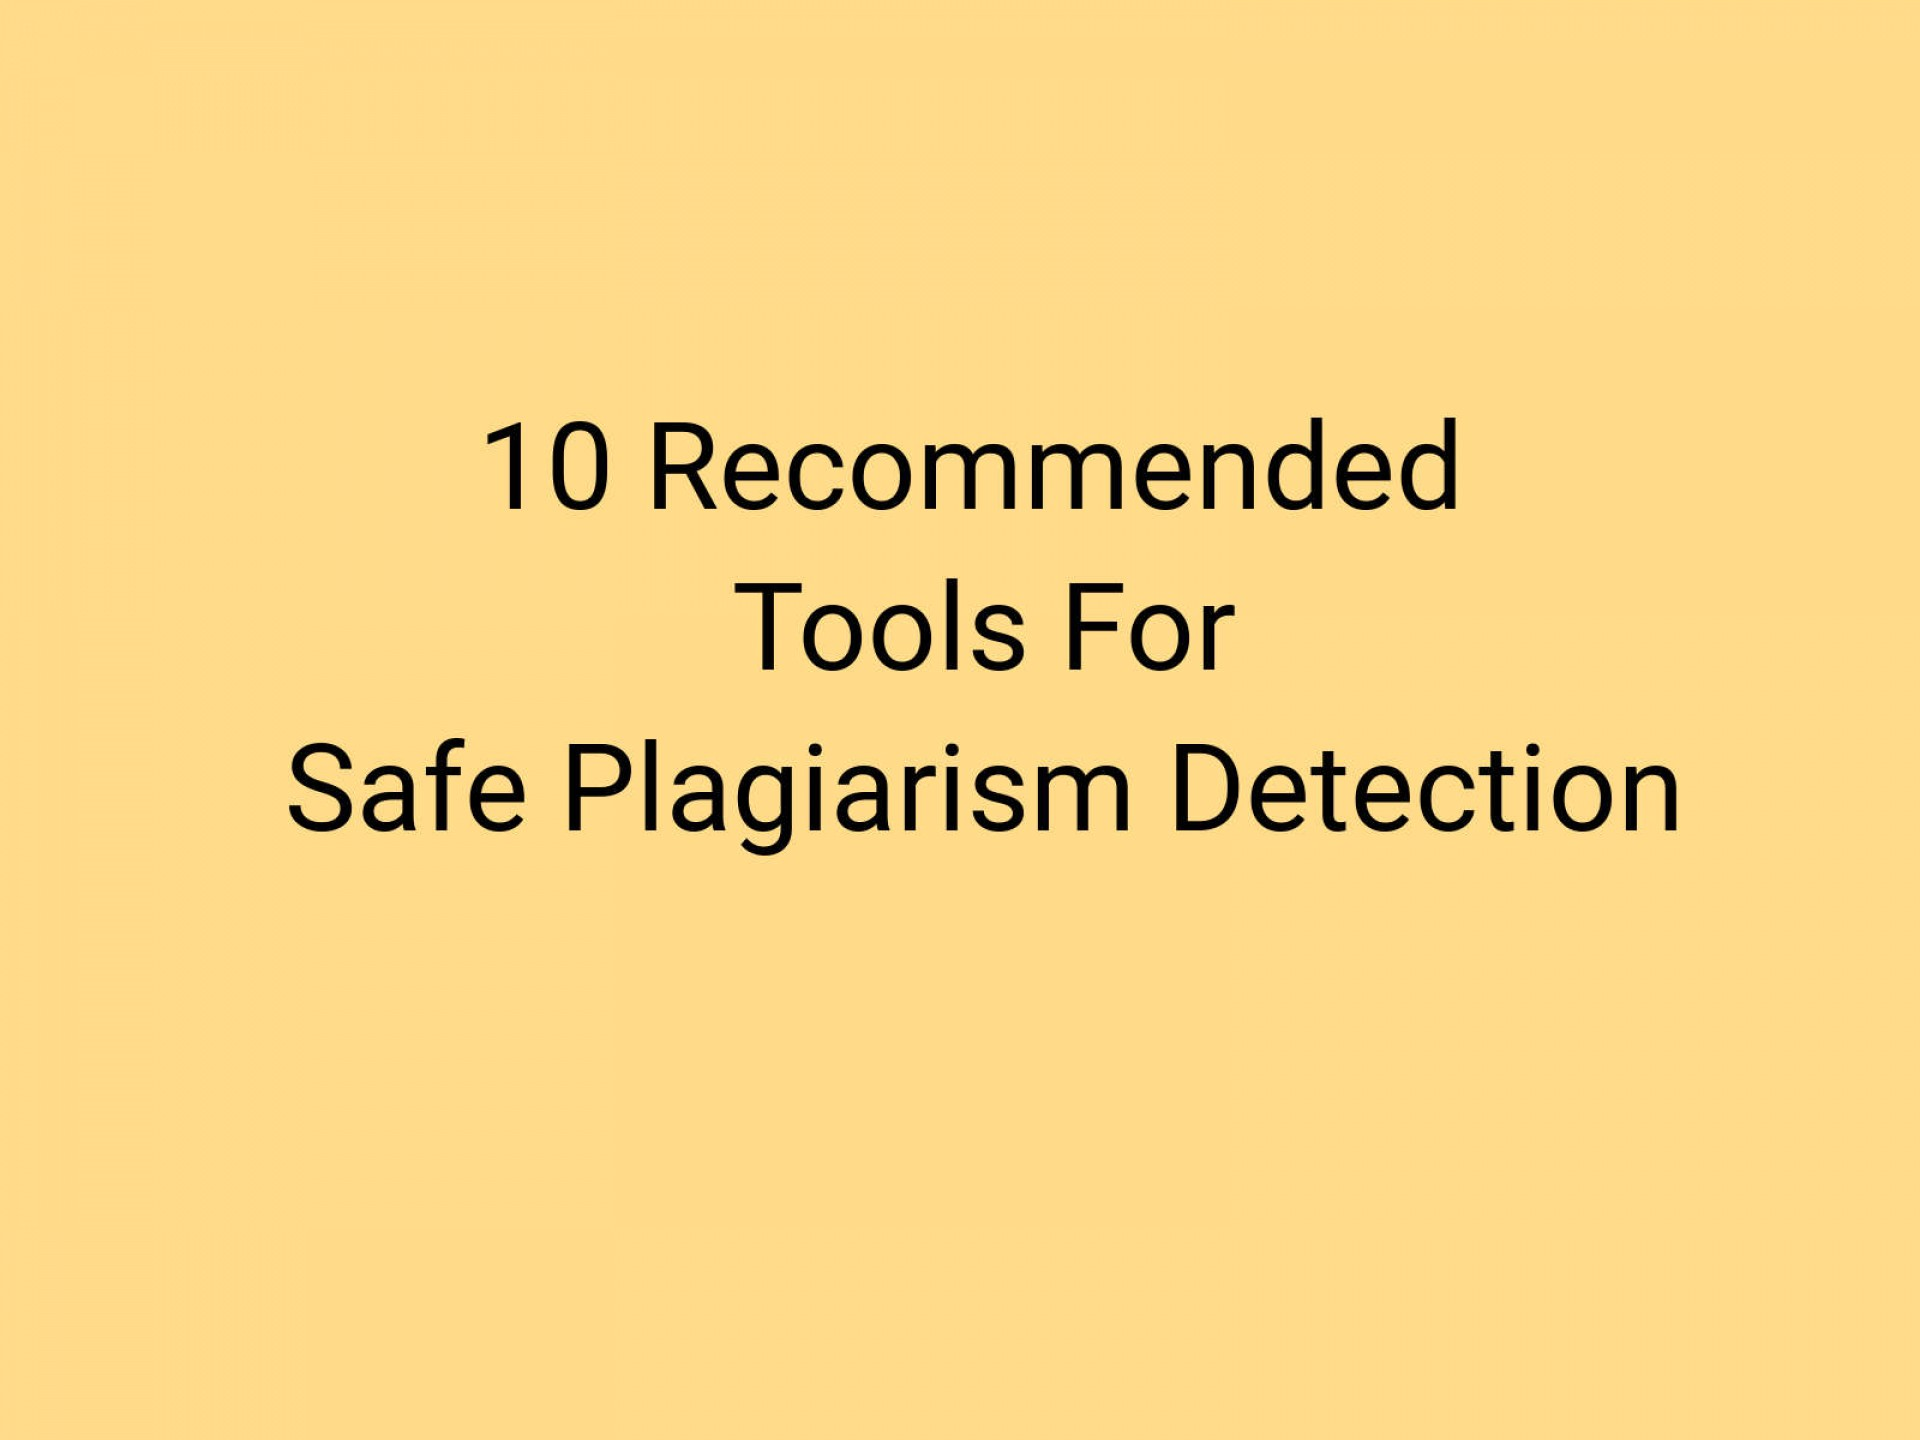 019 Research Paper Plagiarism Detection Software Online Checker For Papers Stunning Free Students Grammarly With Percentage 1920